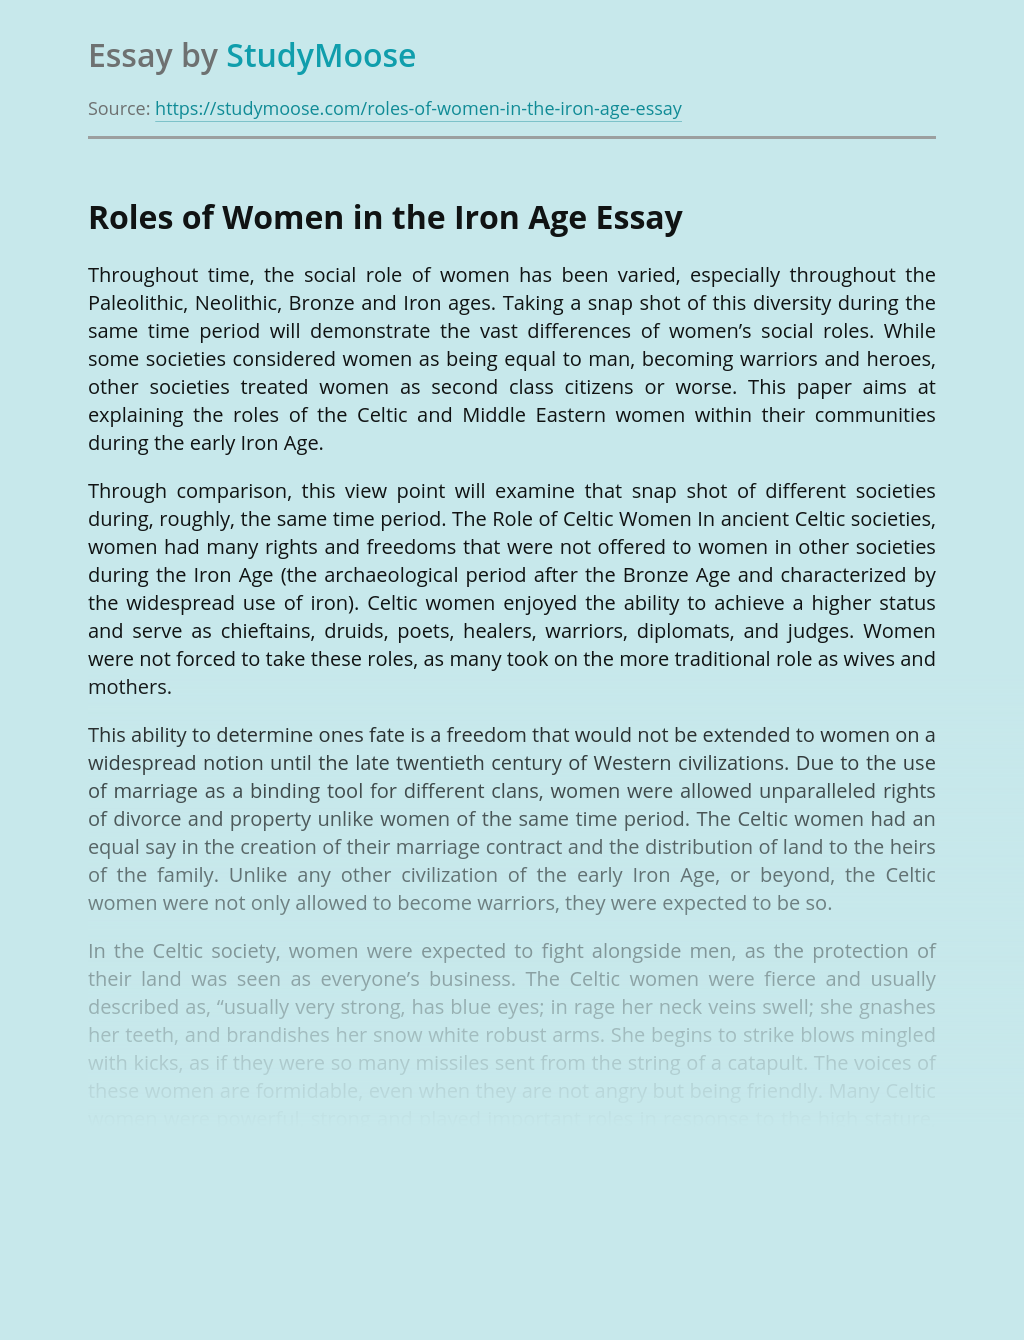 Roles of Women in the Iron Age